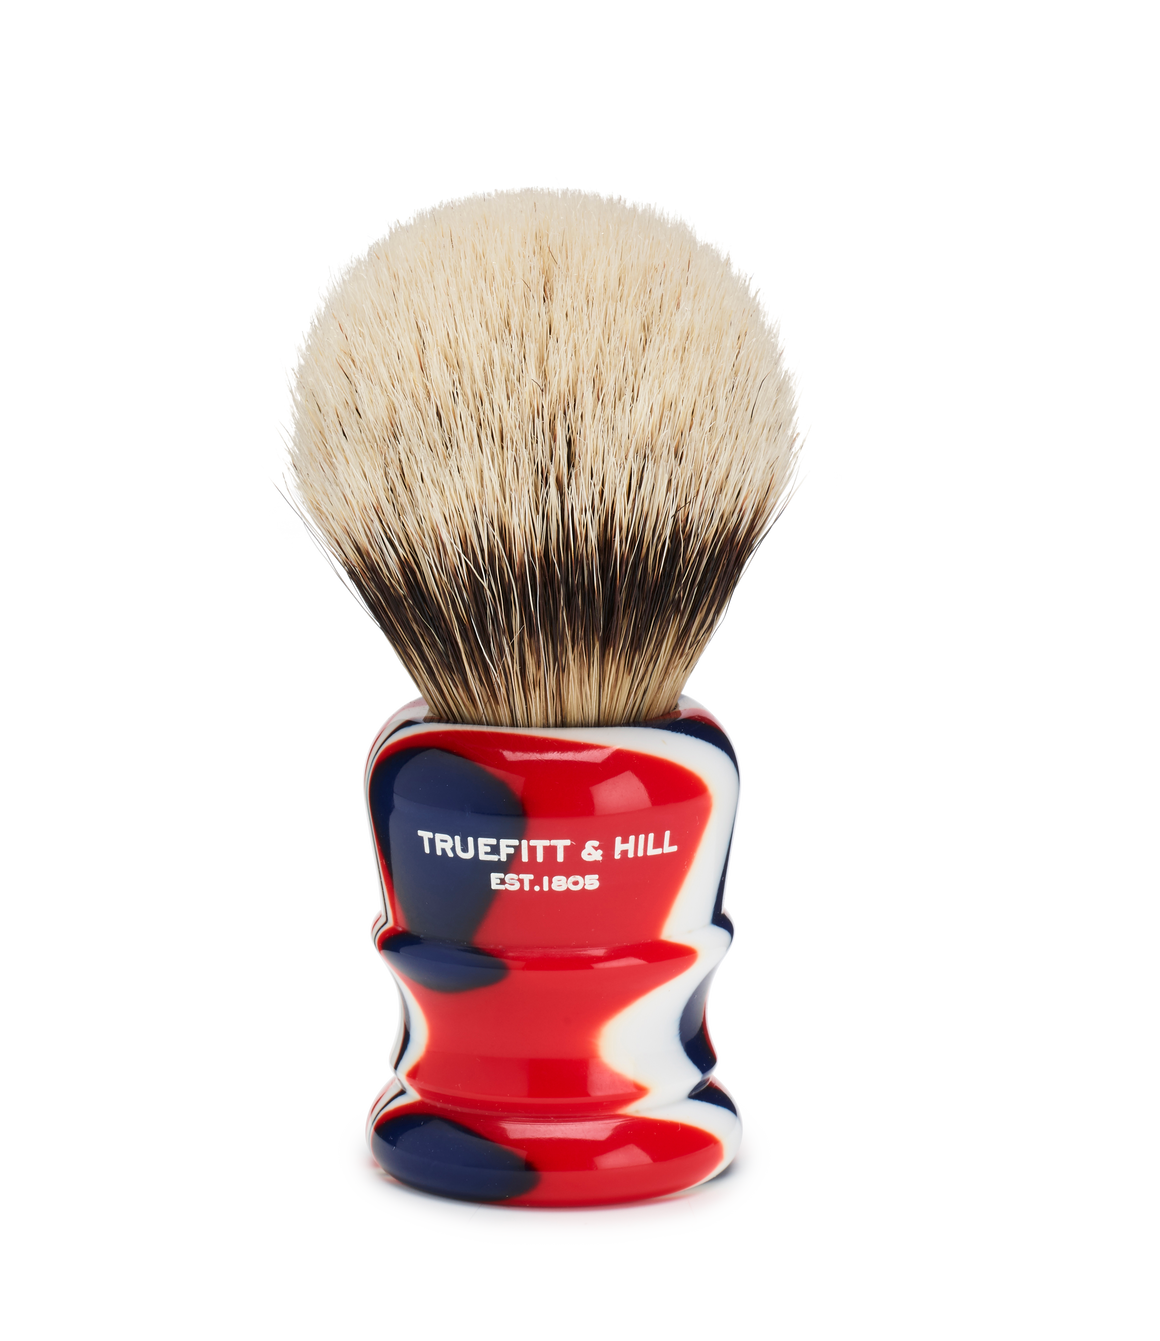 Wellington Silvertip Shaving Brush With Bulb Knot - Truefitt & Hill USA